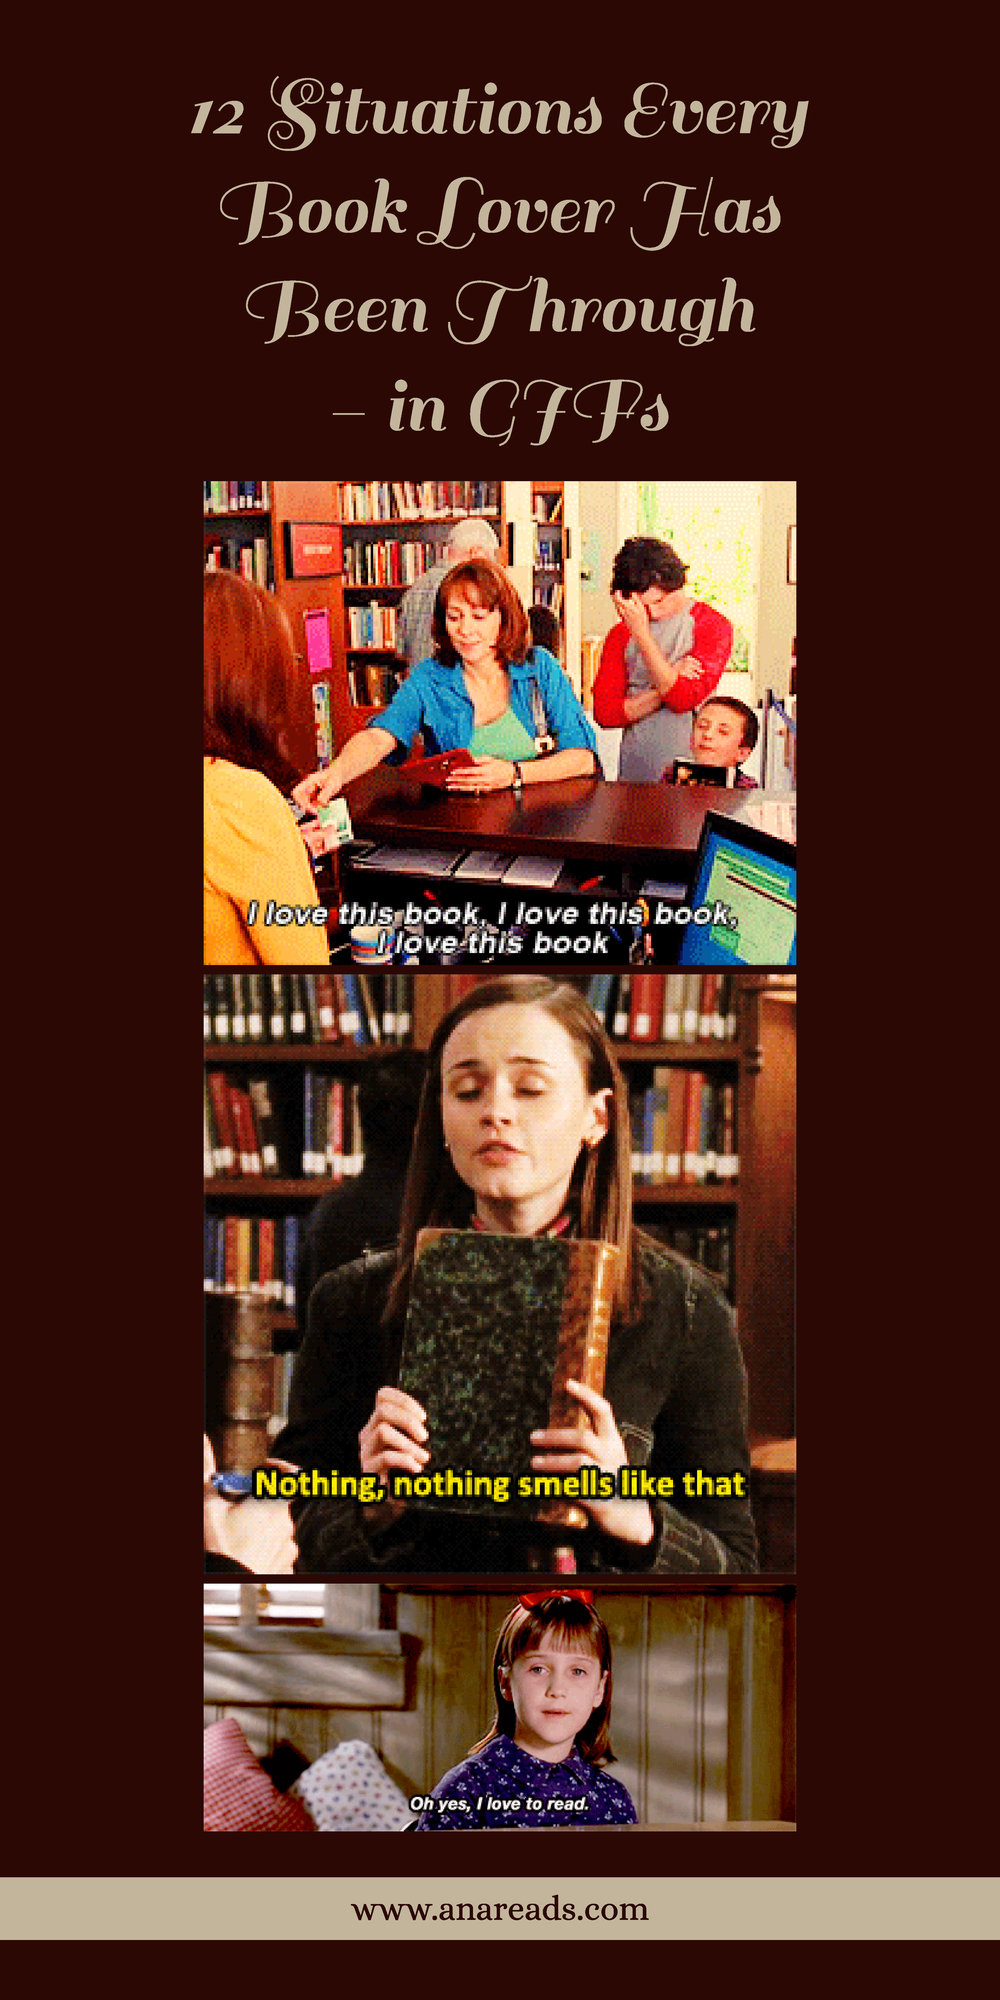 12 situations every book lover has been through - in gifs